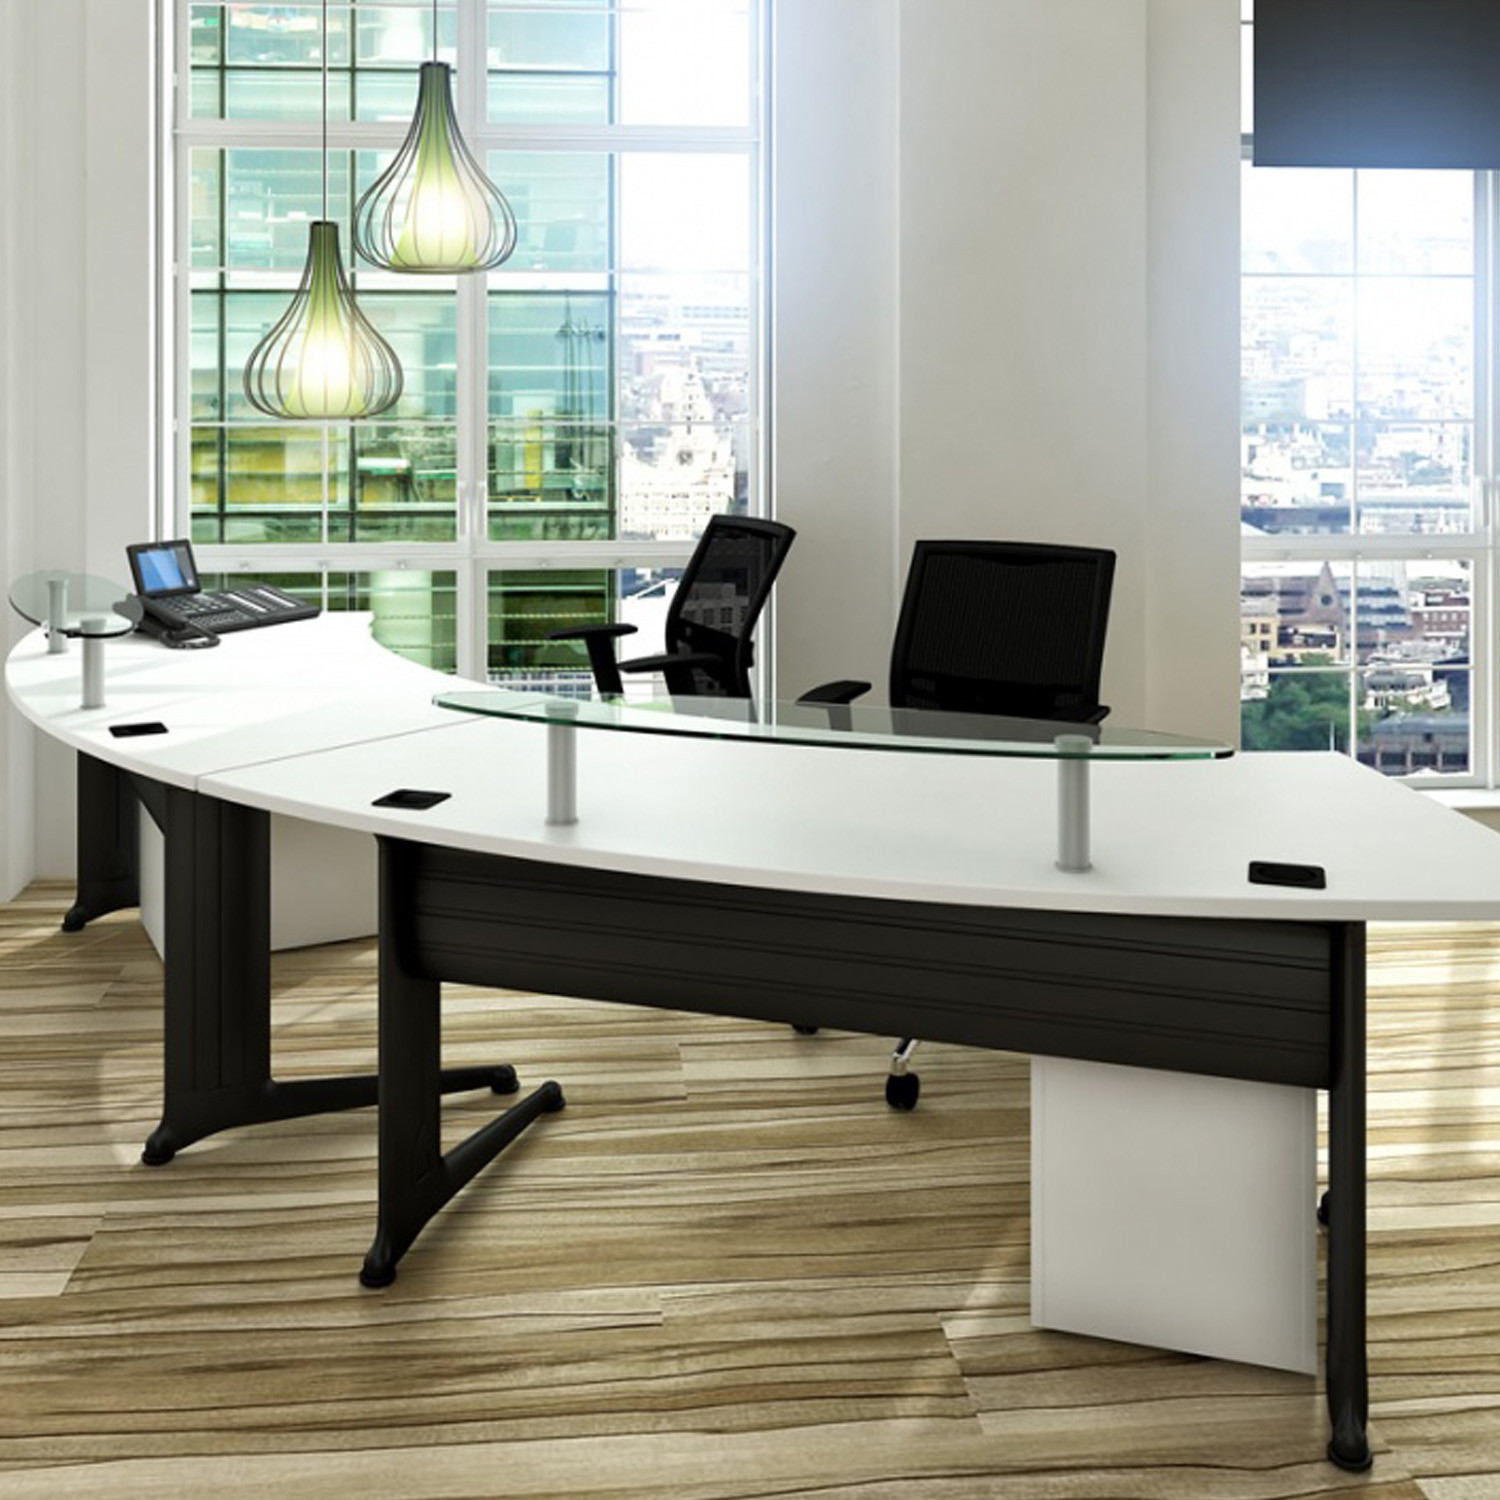 Kassini Dual Reception Desks with glass reception shelves